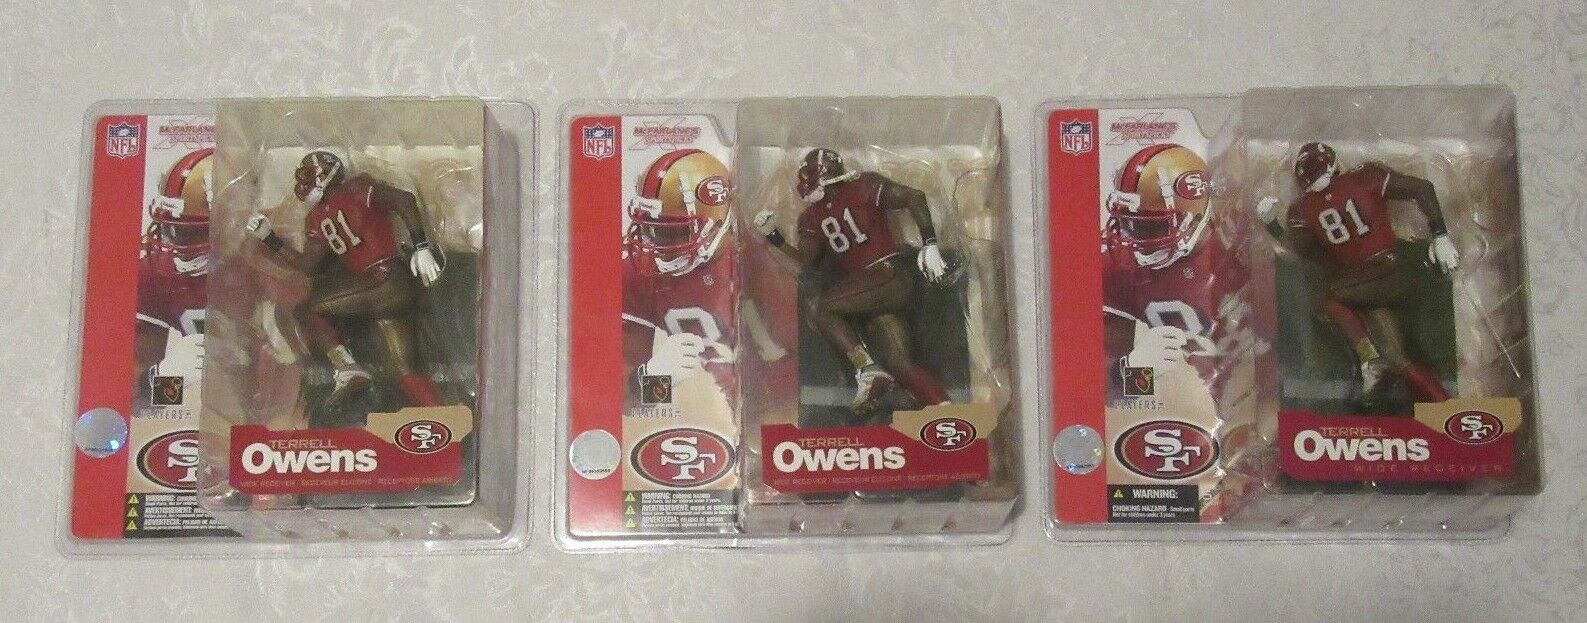 McFarlane NFL Series 4 Terrell Owens Chase Variant rot Jersey 49ers Lot of 3